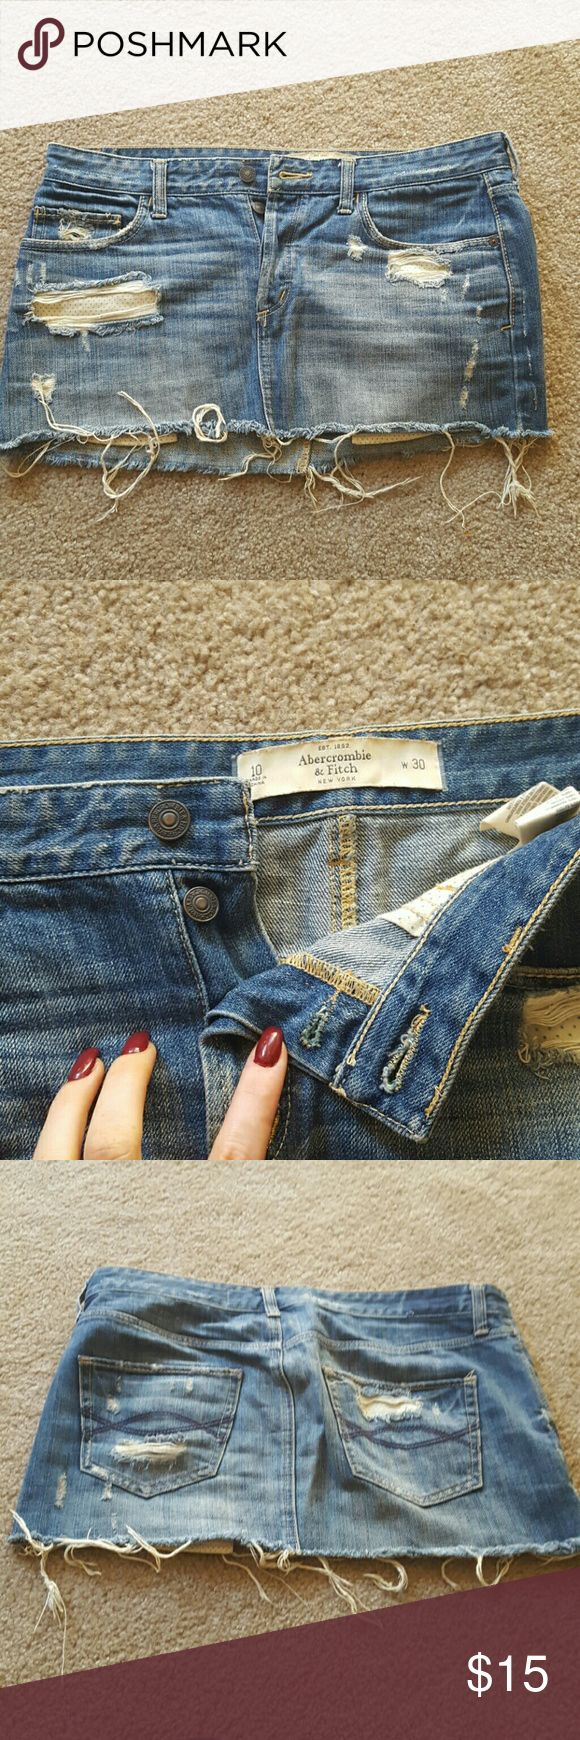 Abercrombie and Fitch jean skirt Low waisted, pocket very slightly peek out. Abercrombie & Fitch Skirts Mini